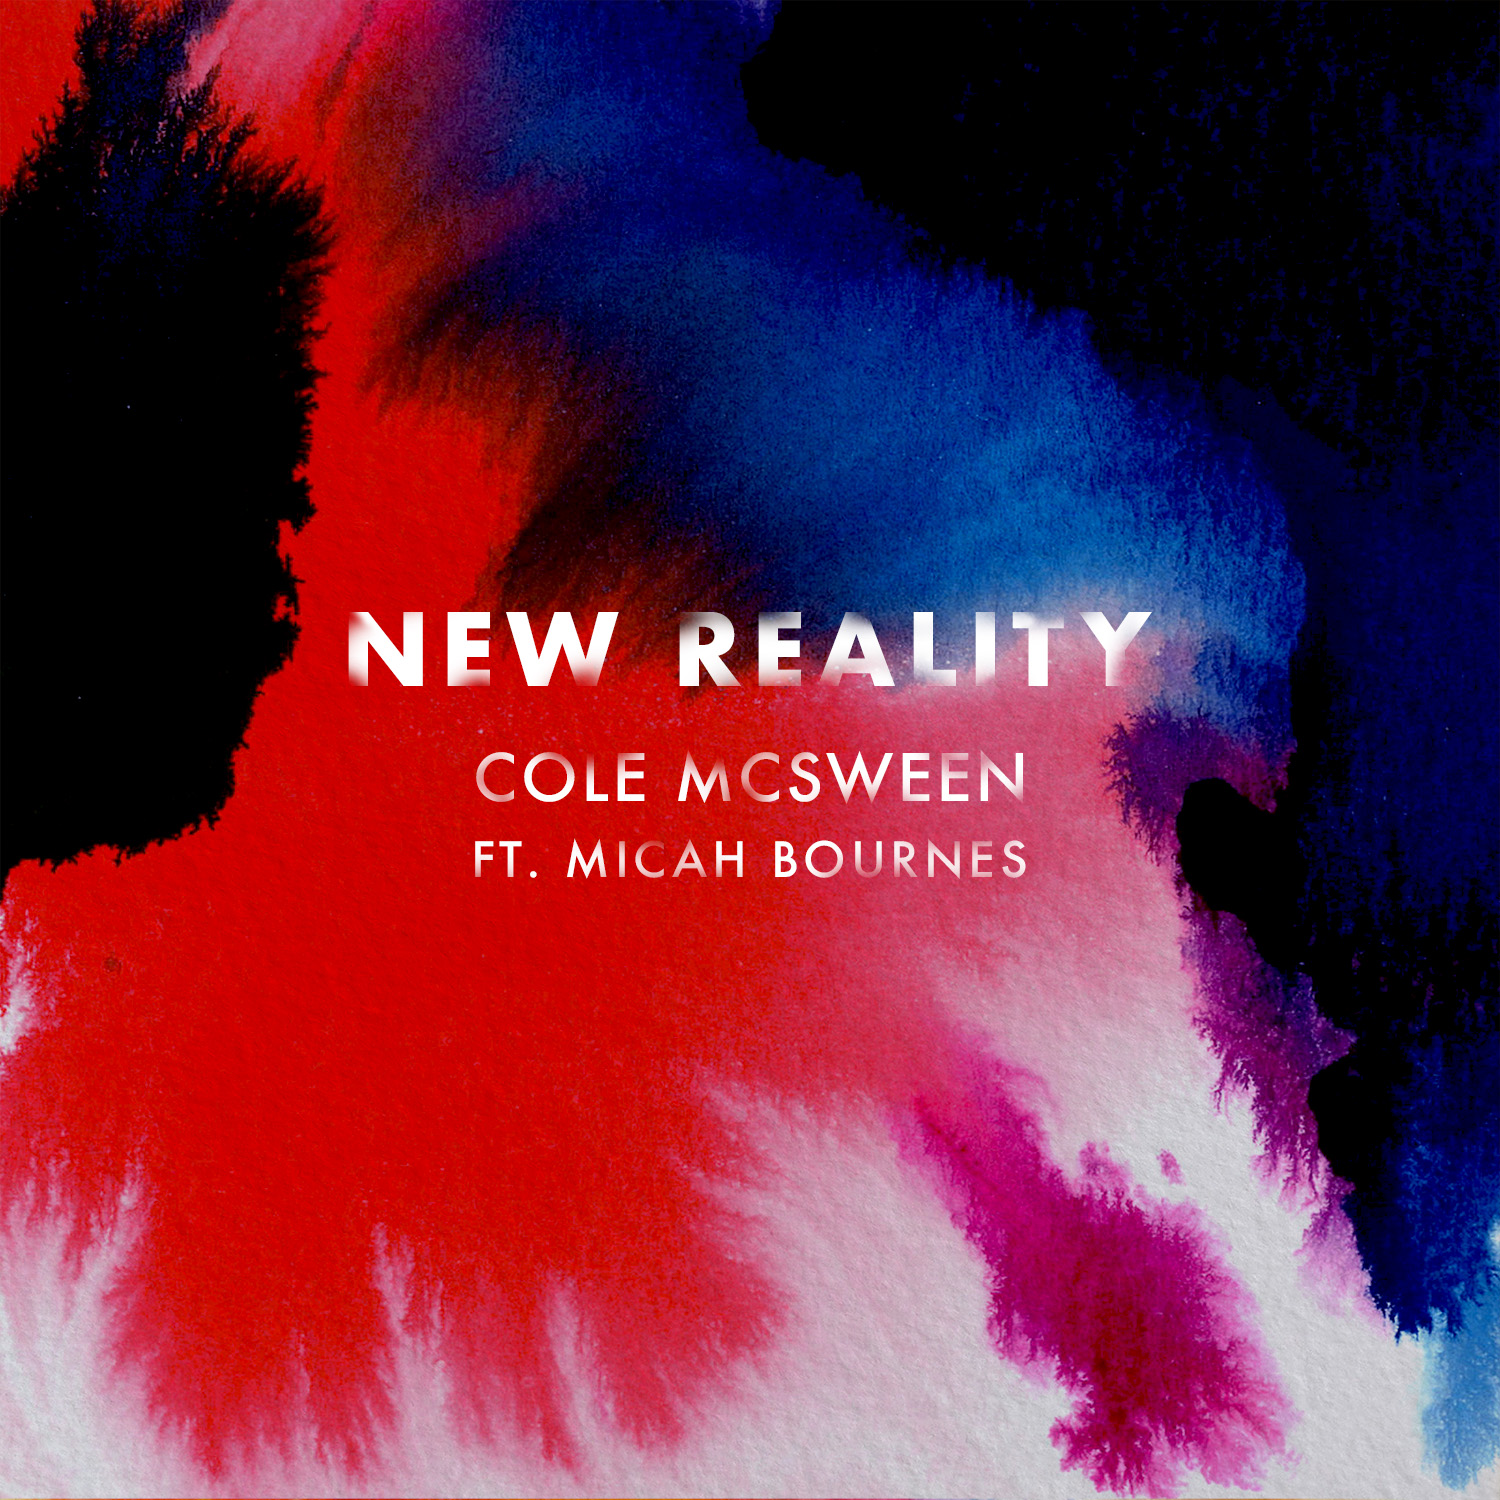 new-reality-cole-mcsween.jpg